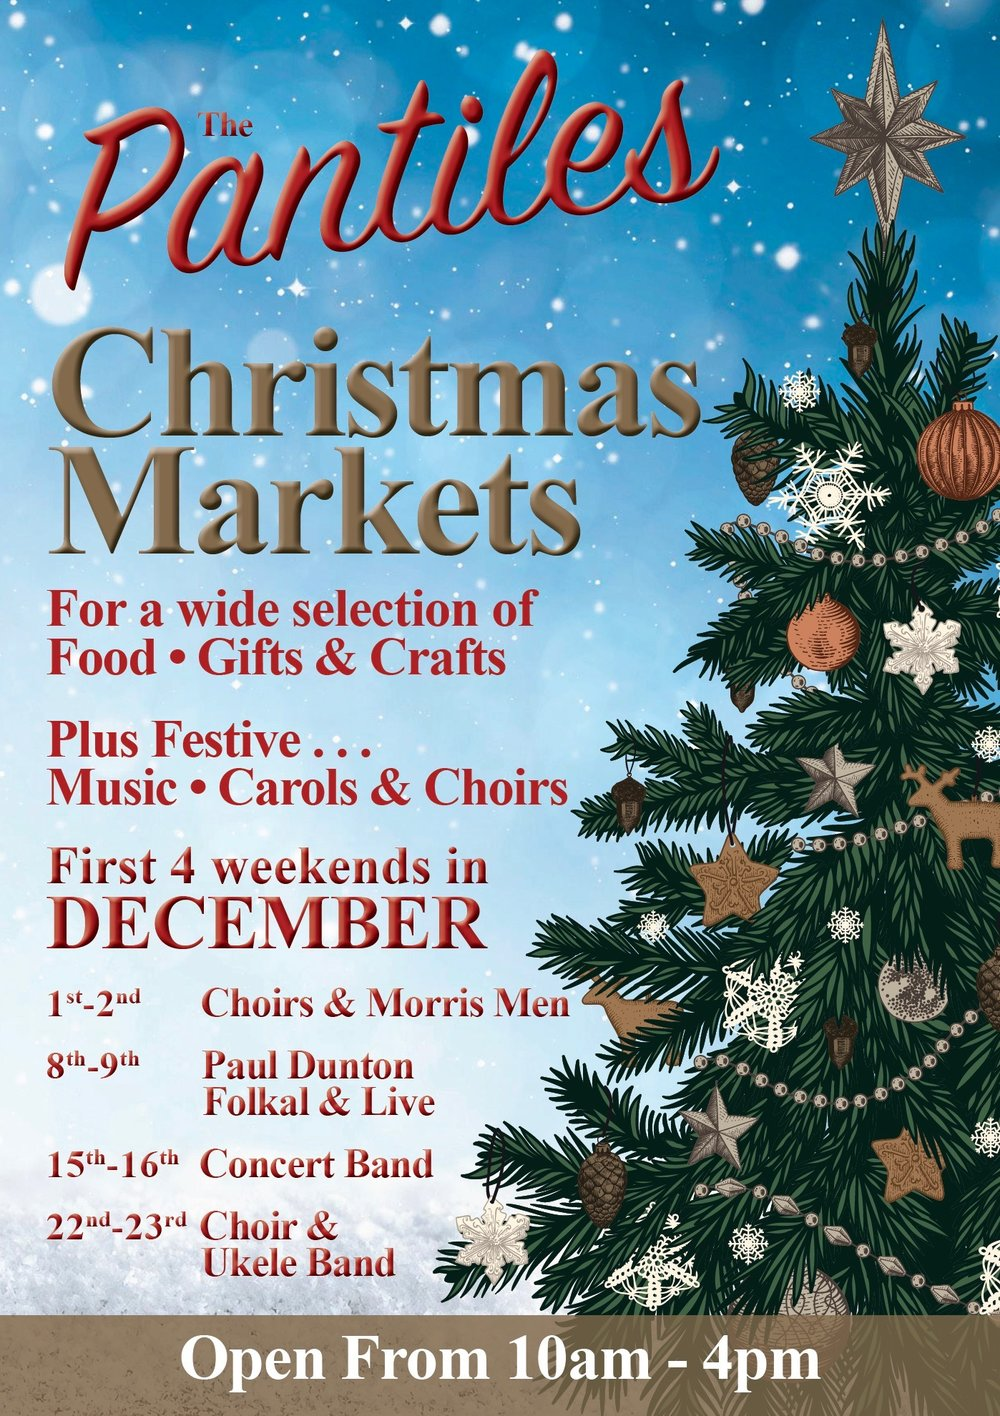 The Pantiles Christmas Market, Tunbridge Wells, Kent